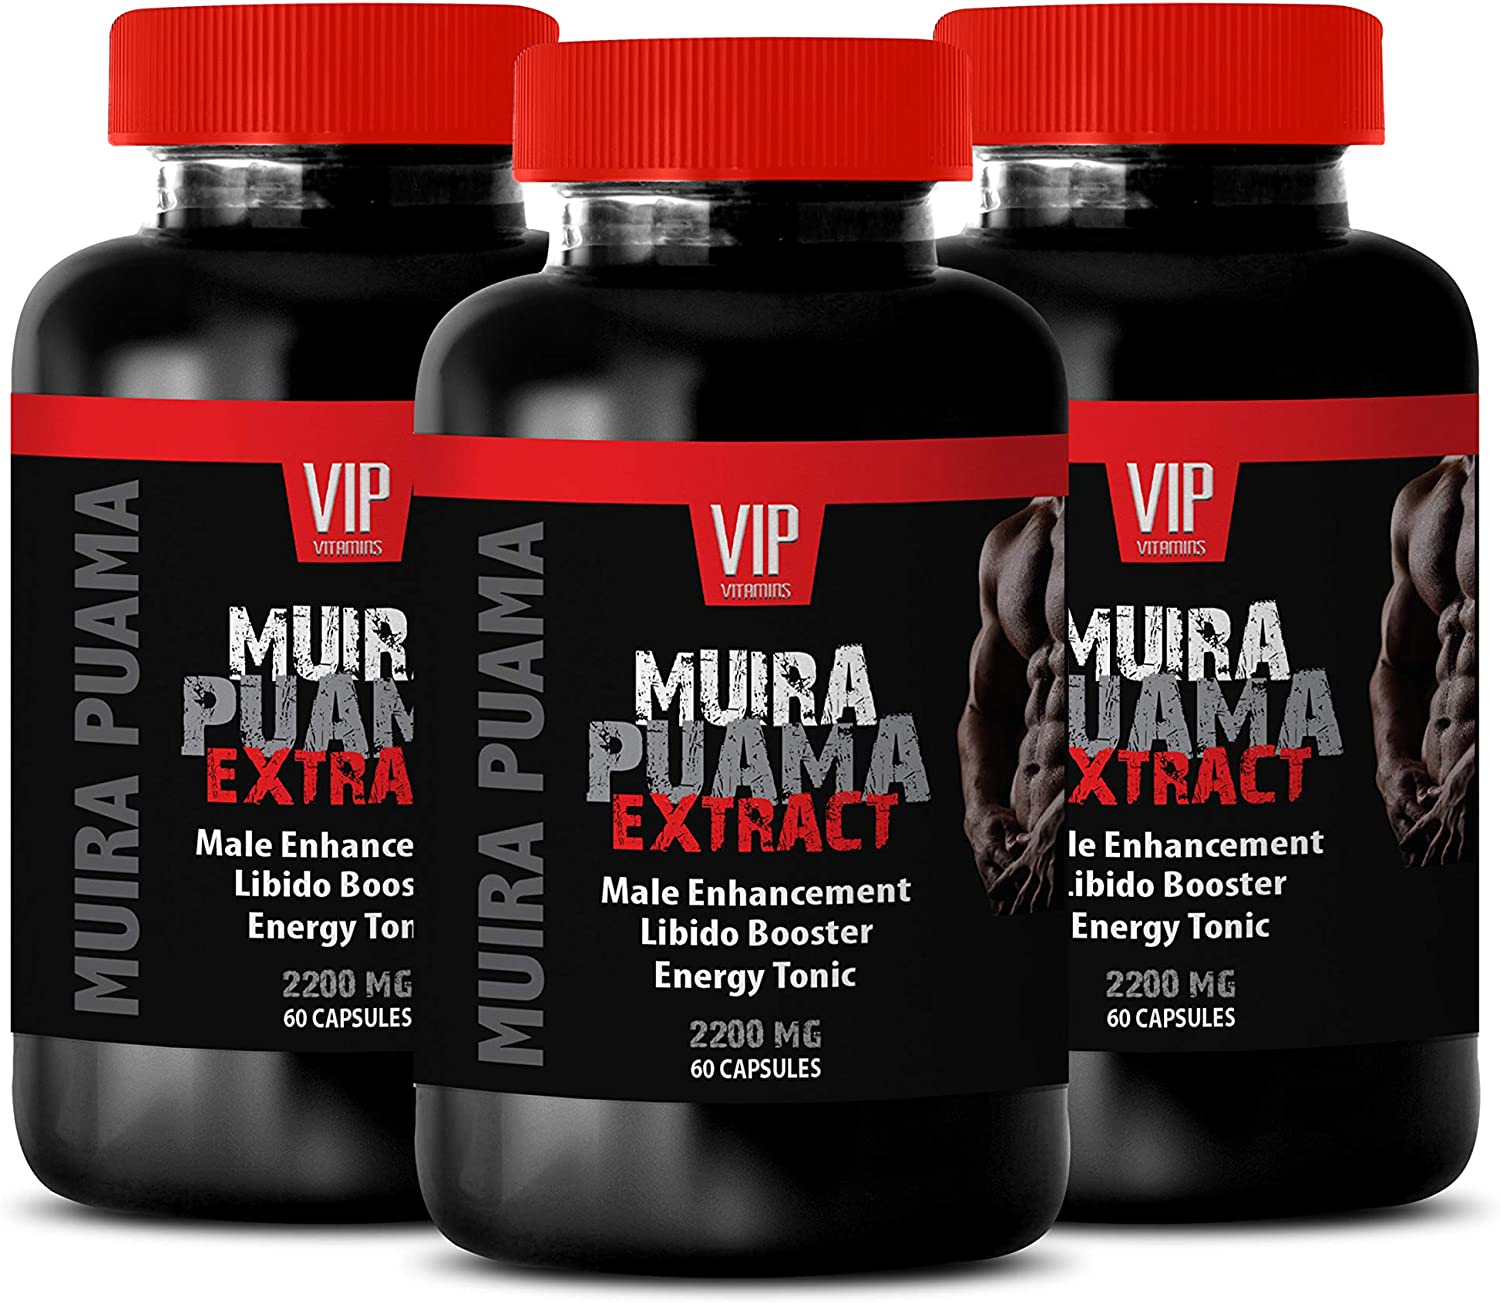 Energy 当店限定販売 Supplements for Men with Fatigue - PUAMA オーバーのアイテム取扱☆ Male Enh Muira